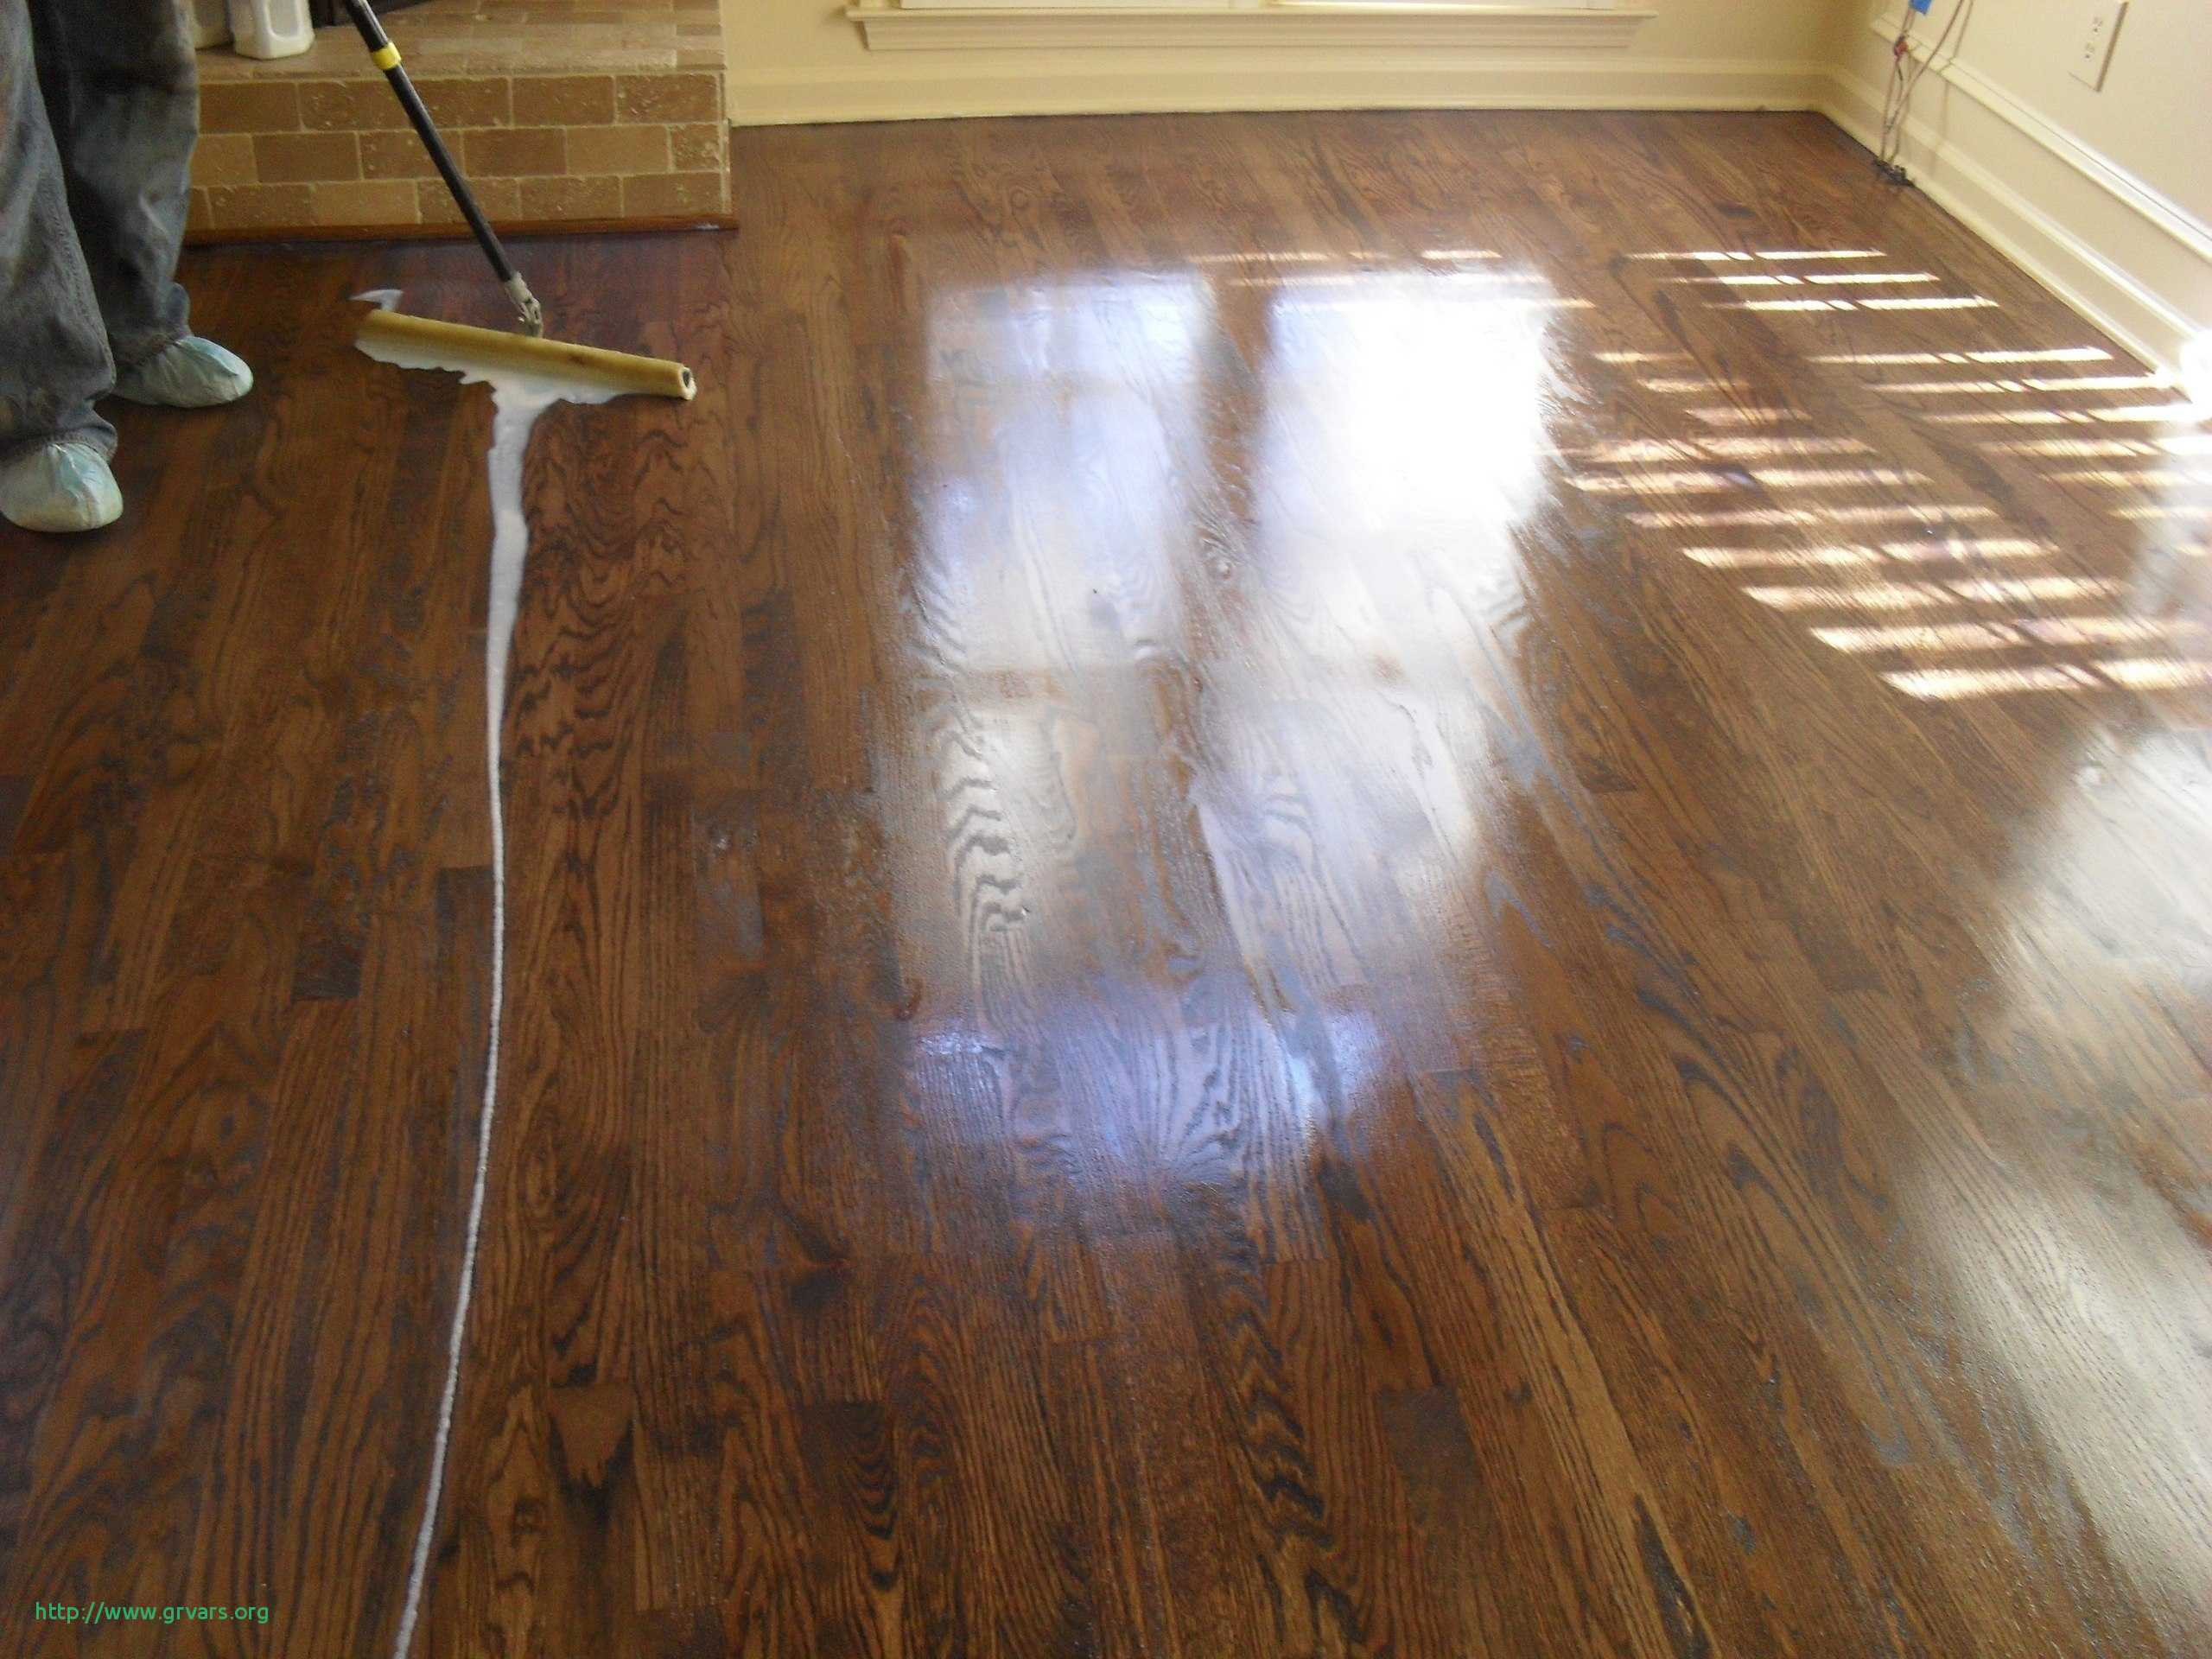 hardwood floor repair charlotte nc of image number 6563 from post restoring old hardwood floors will within nouveau hardwood floors yourself ideas restoring old will inspirant redo without sanding podemosleganes lovely refinishingod pet